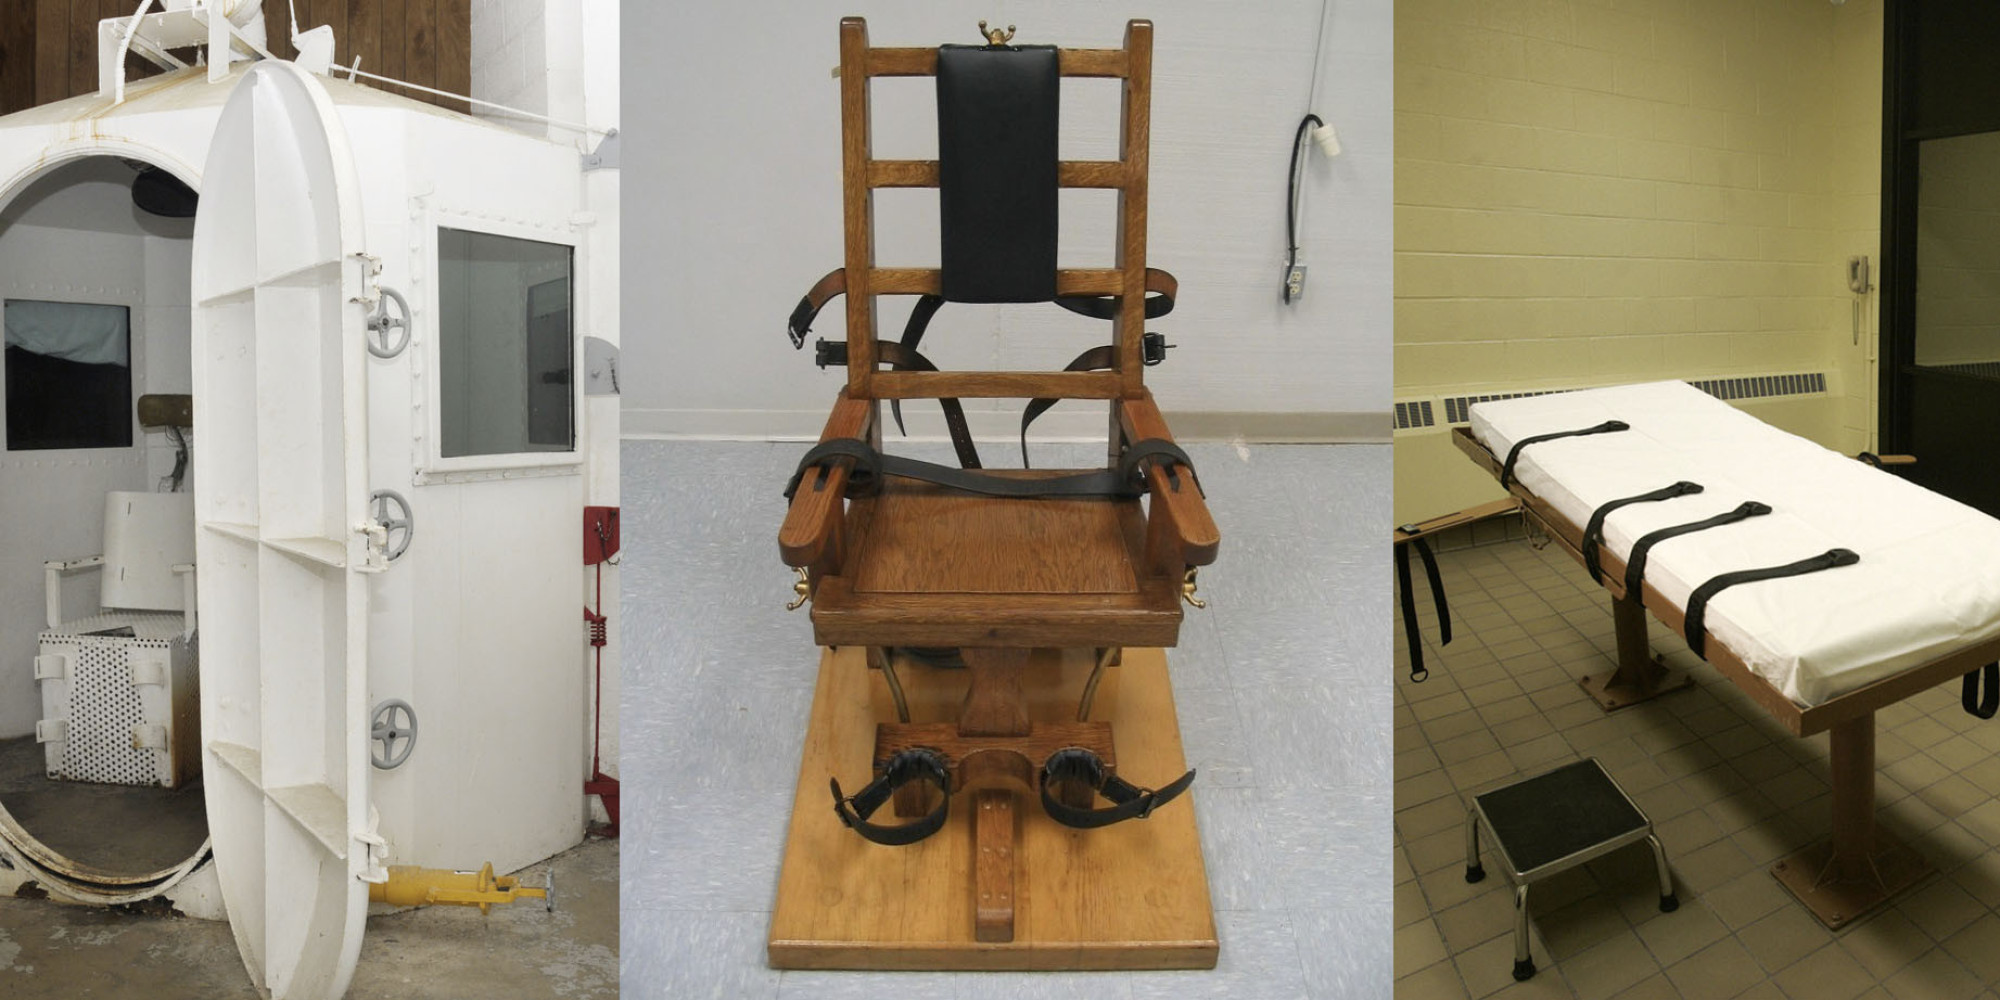 Rehabilitation should replace a death penalty in the united states